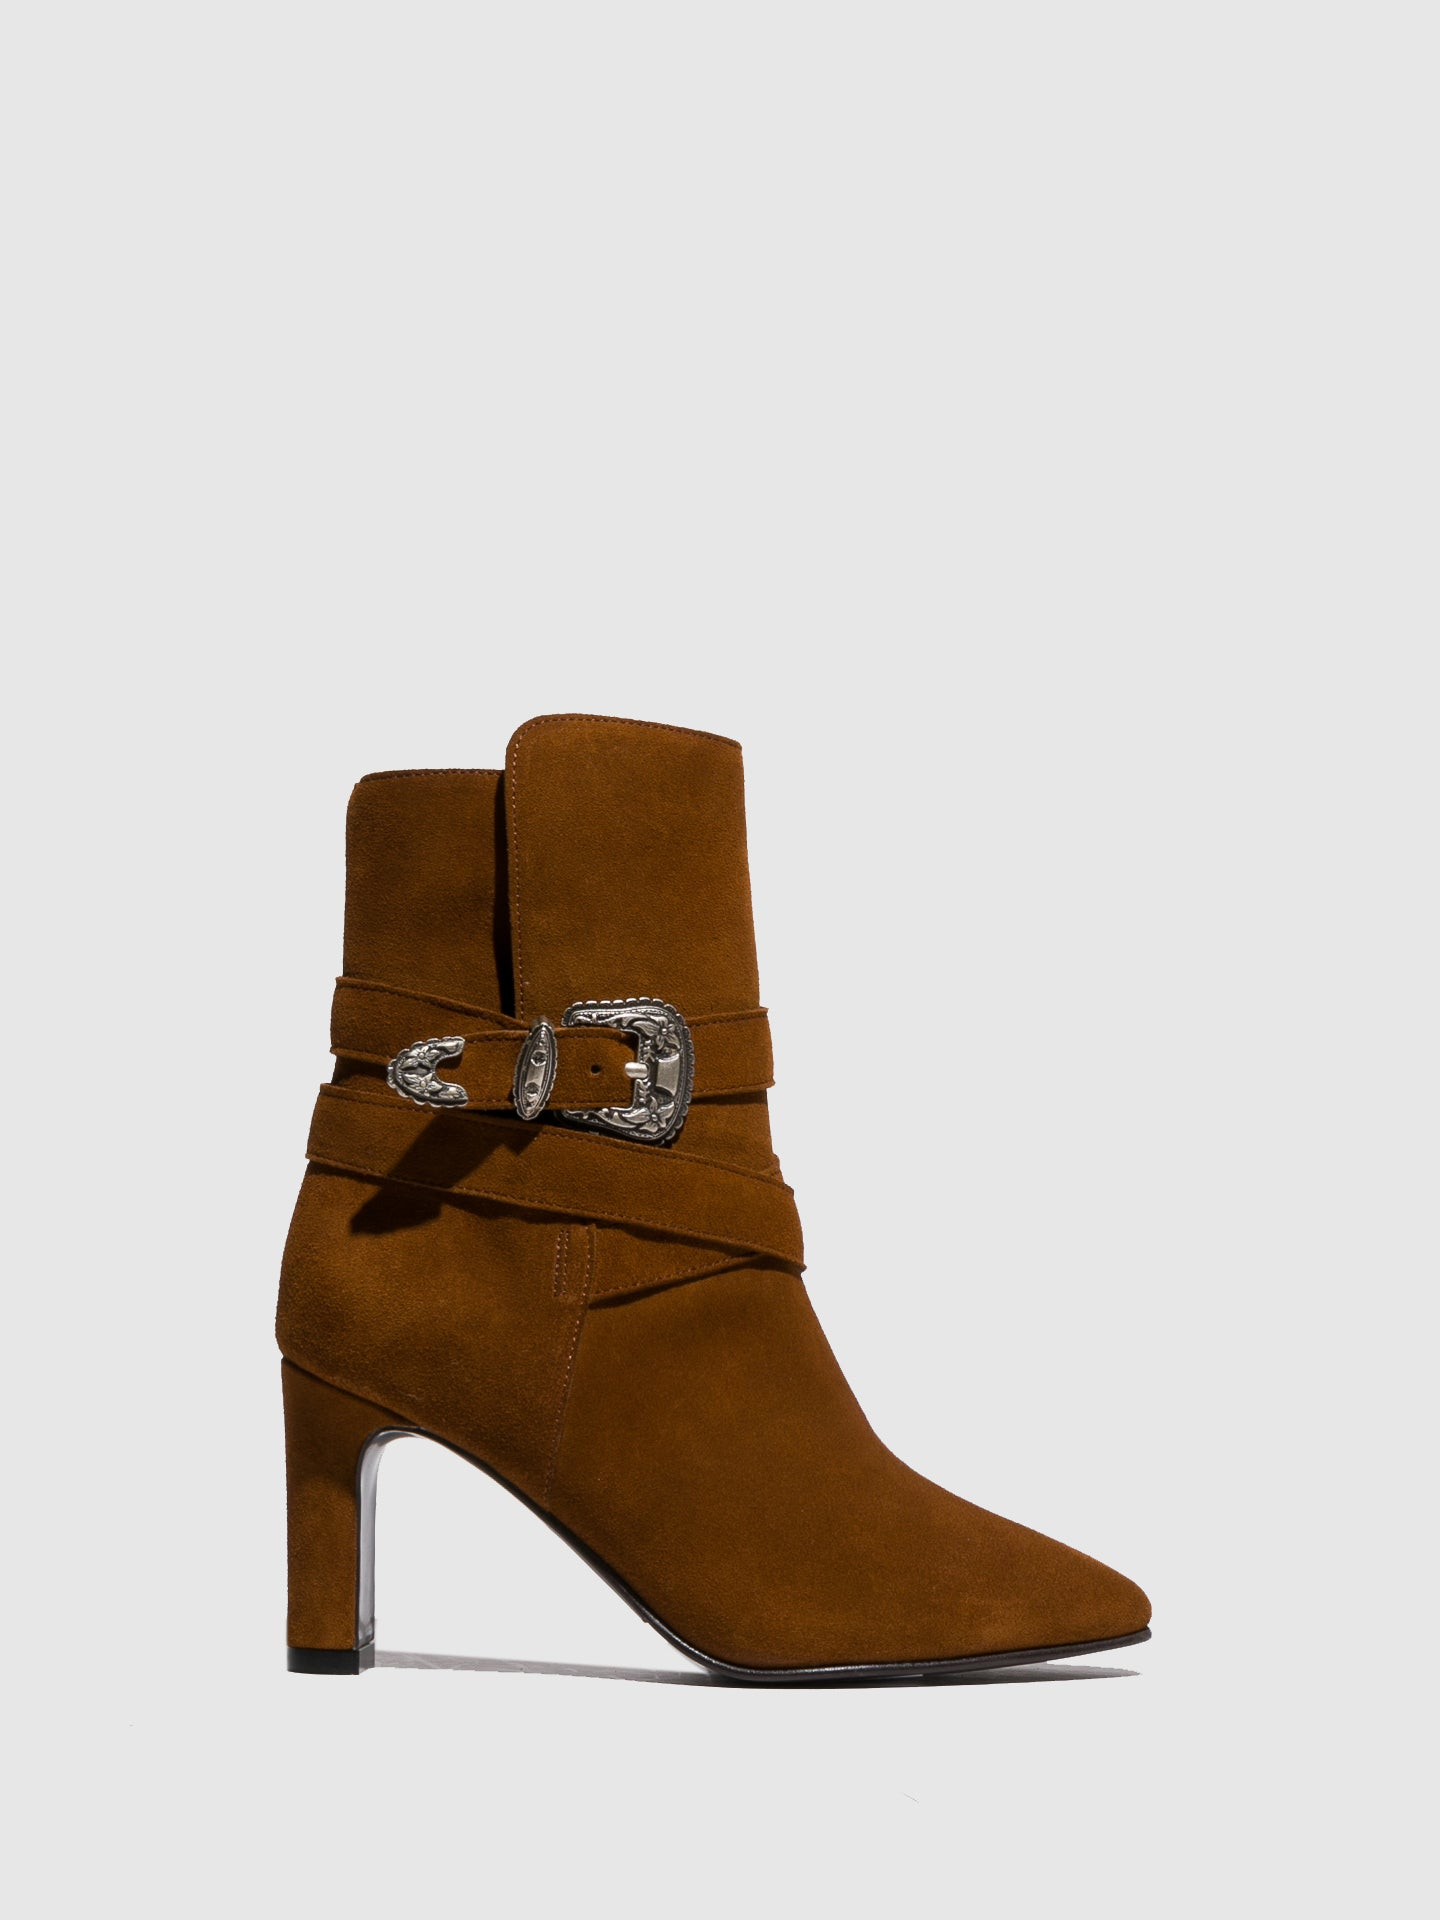 Foreva Camel Buckle Boots